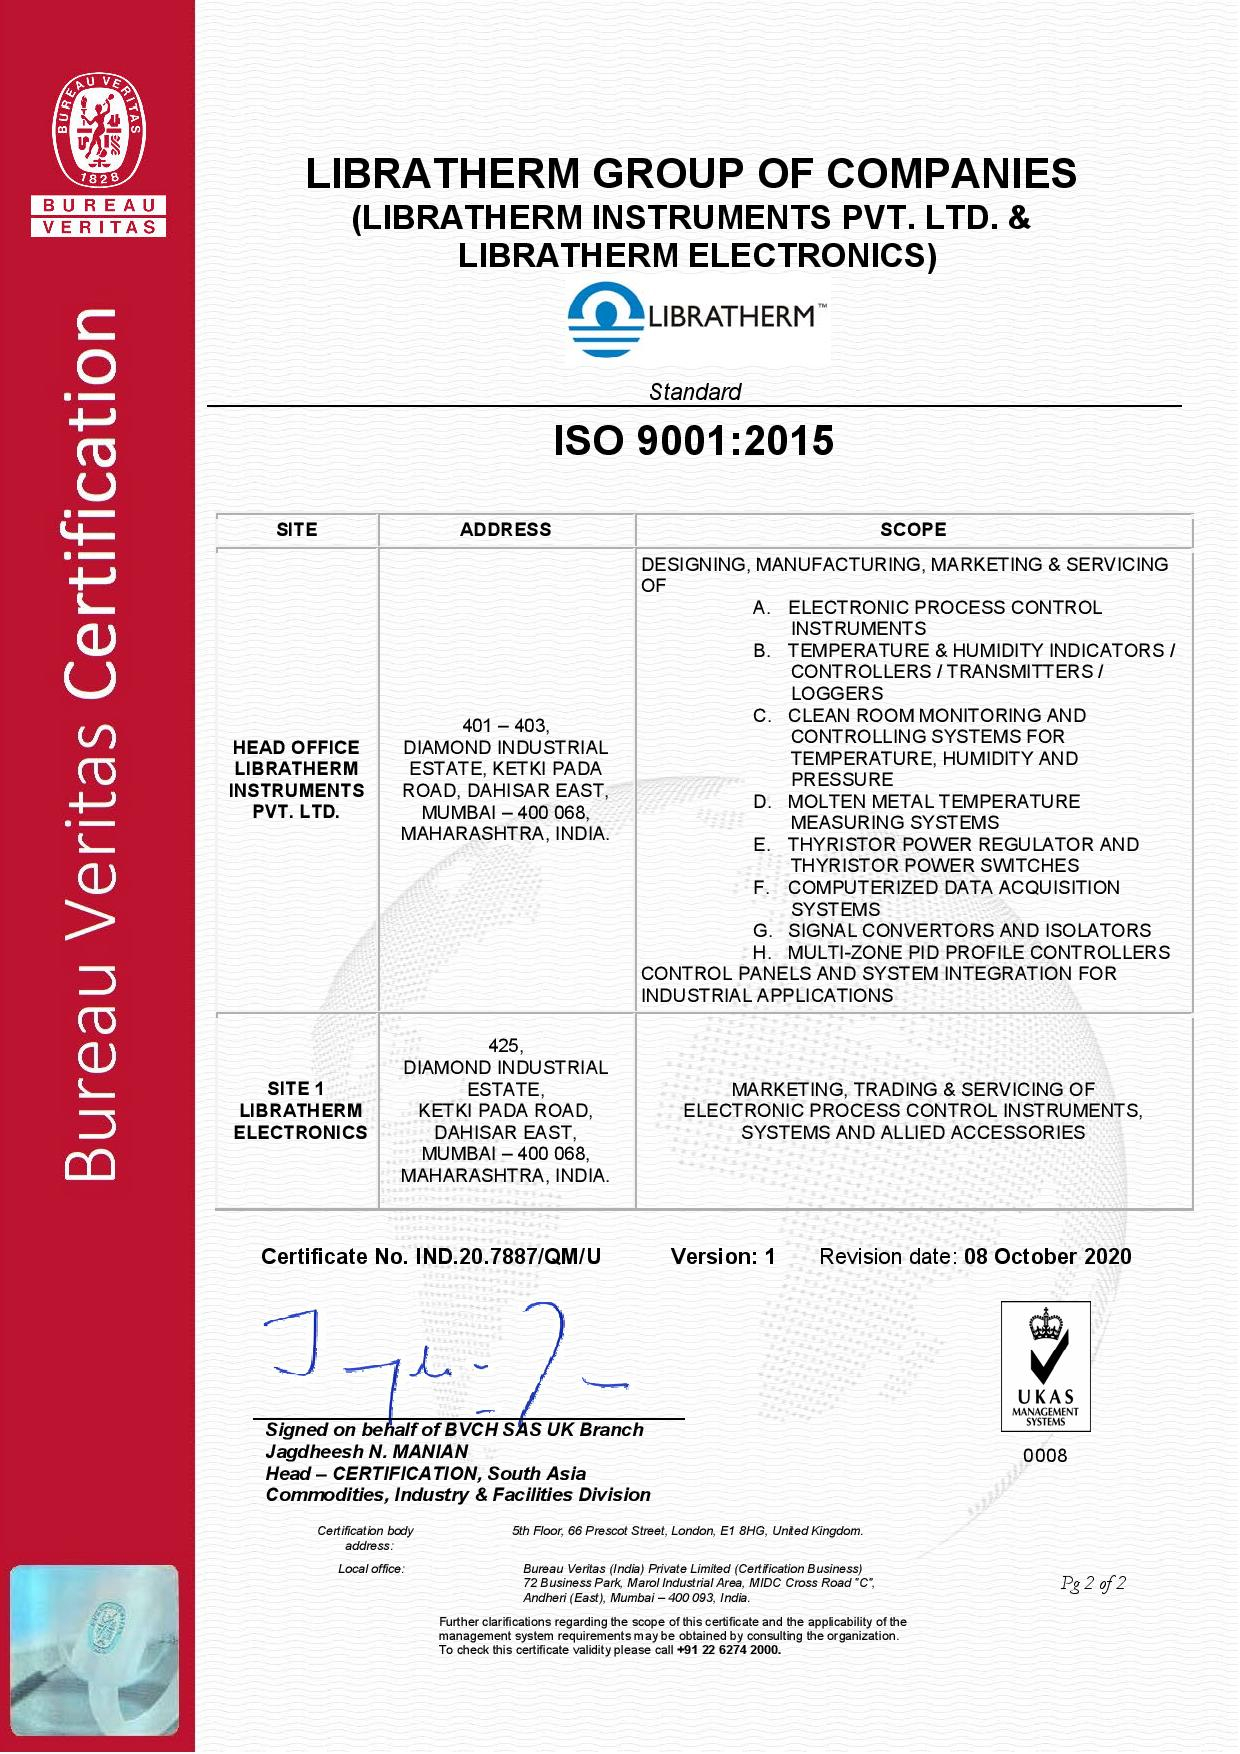 ISO-Certificate-Libratherm Page 2